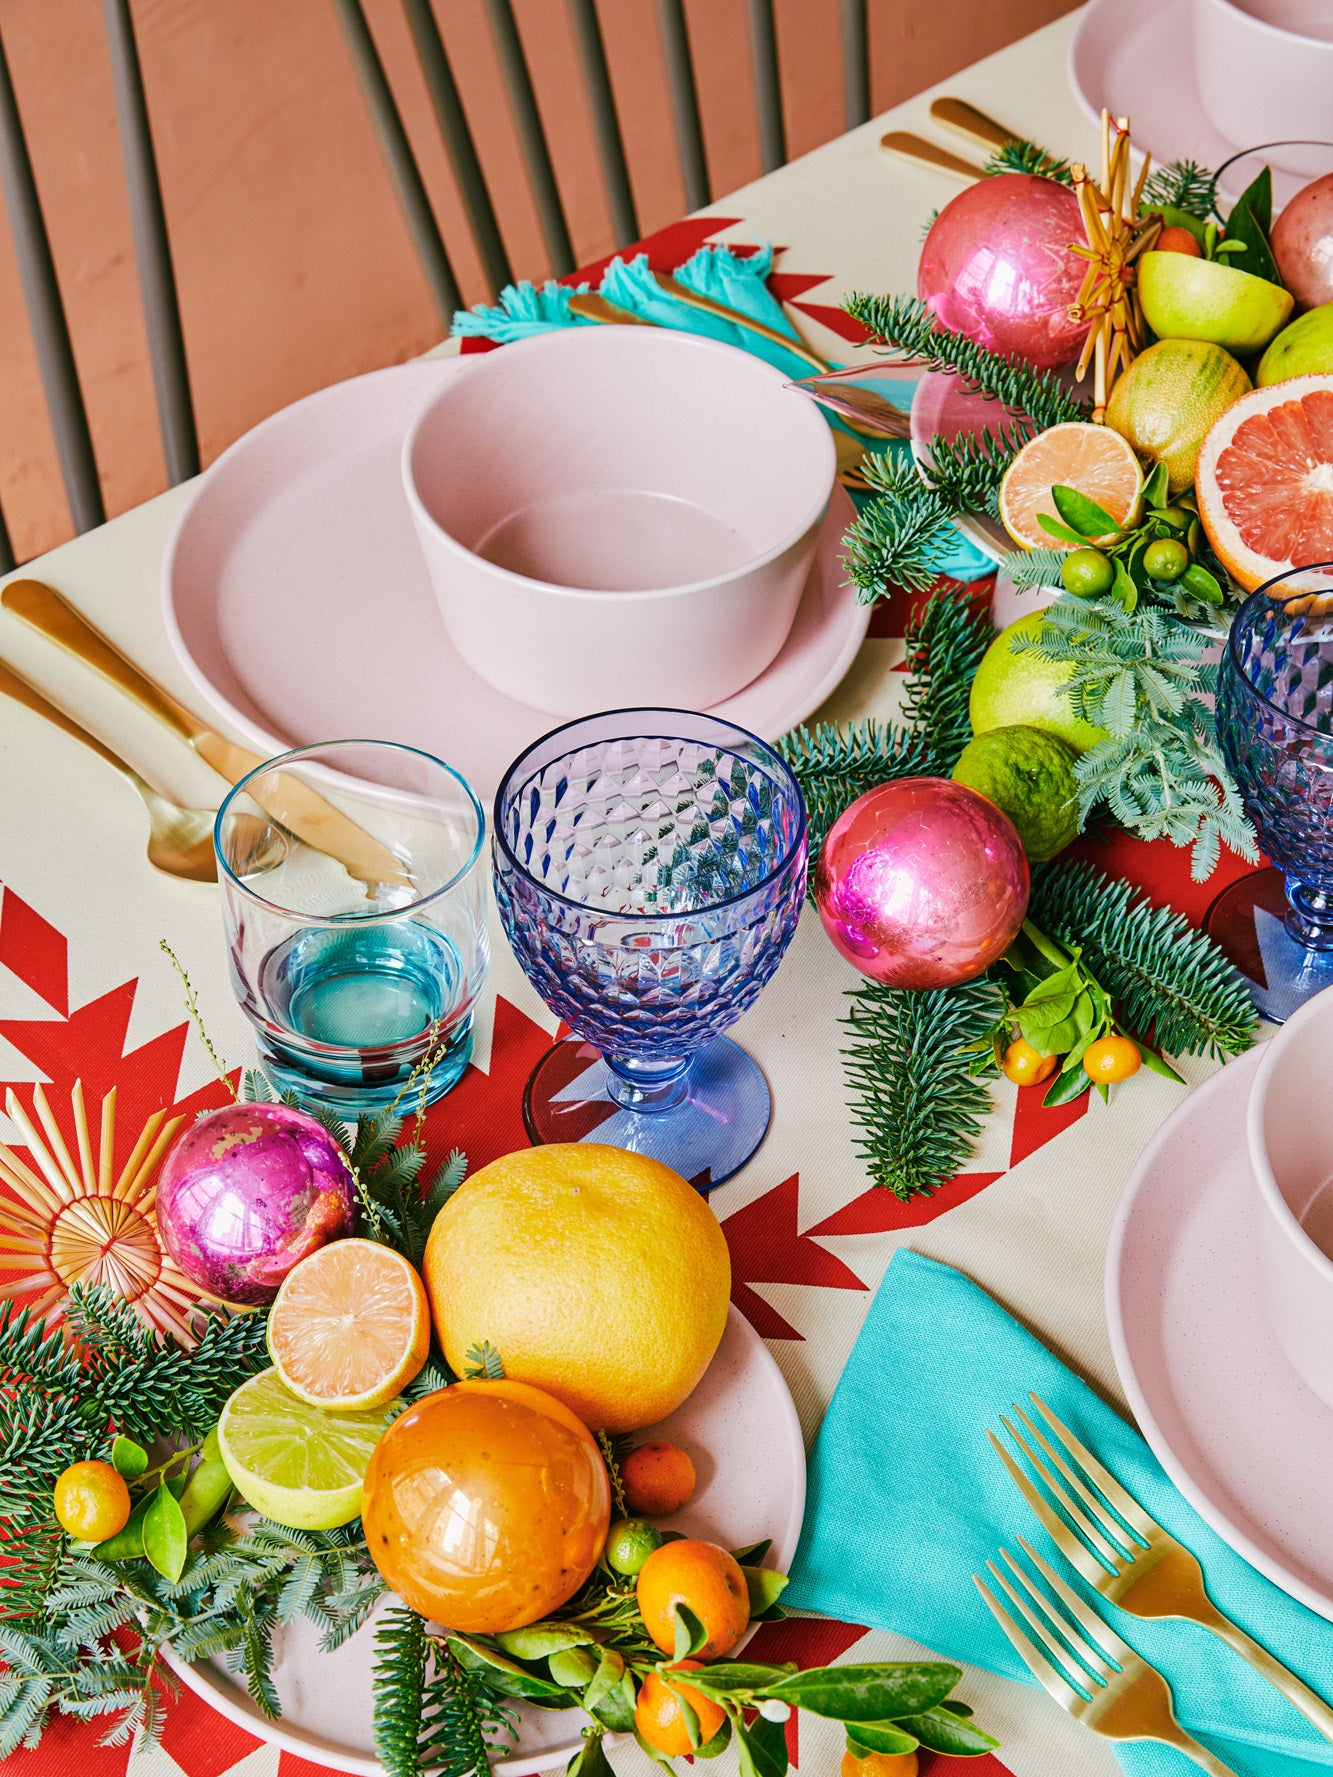 Our Executive Creative Director's Holiday Table Skips the Red and Green Clichés